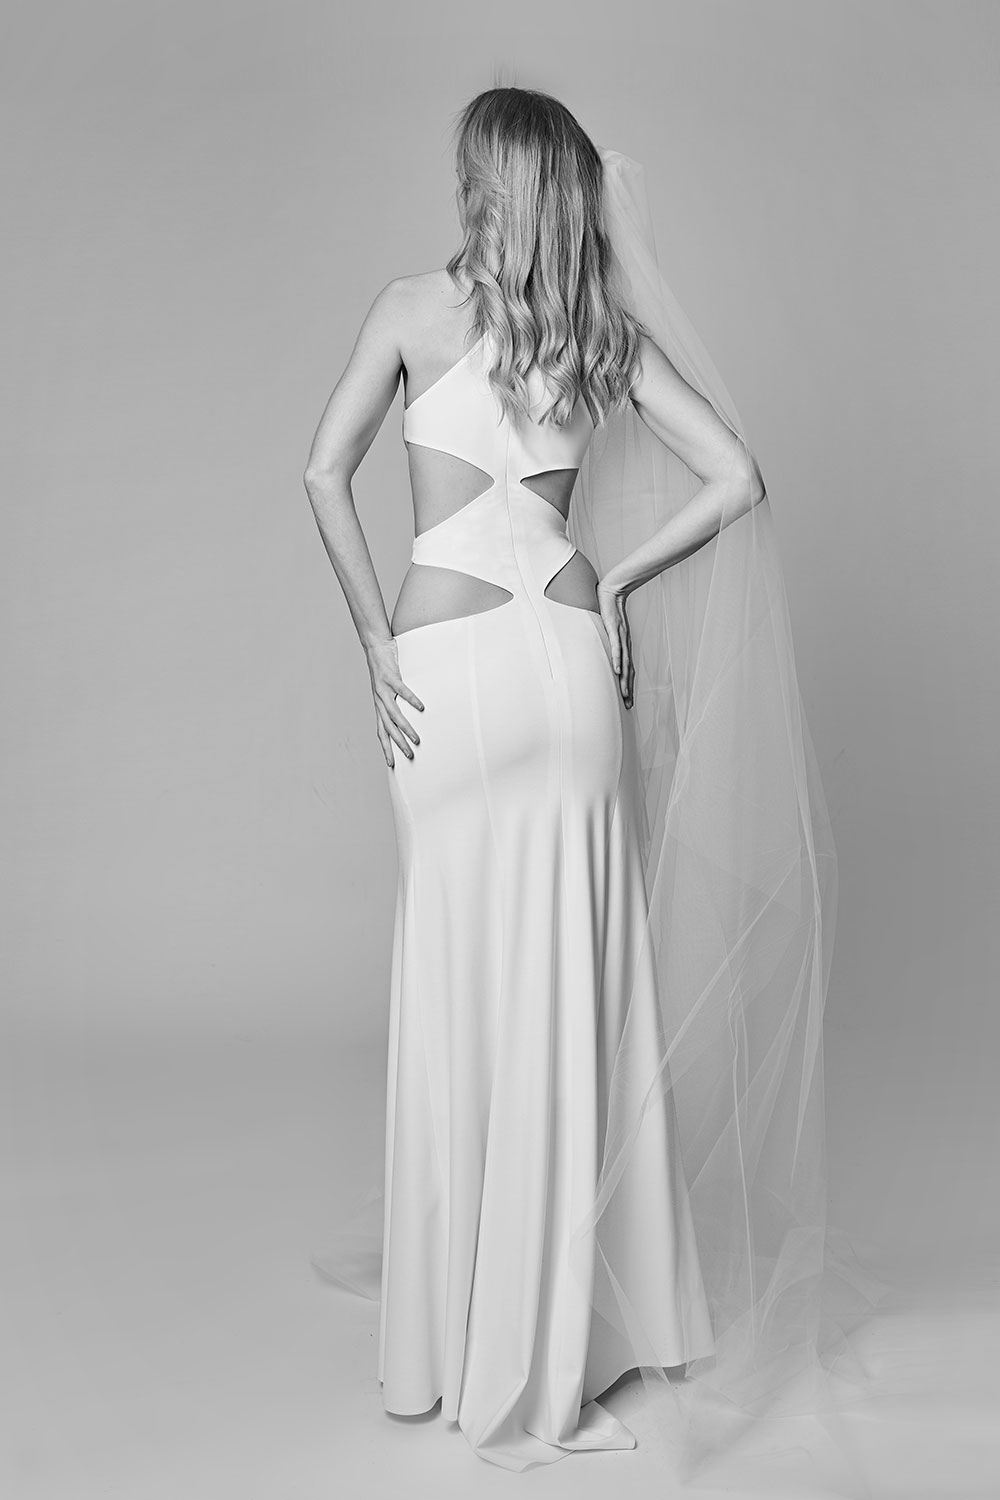 CUTOUT_WEDDING_DRESS2